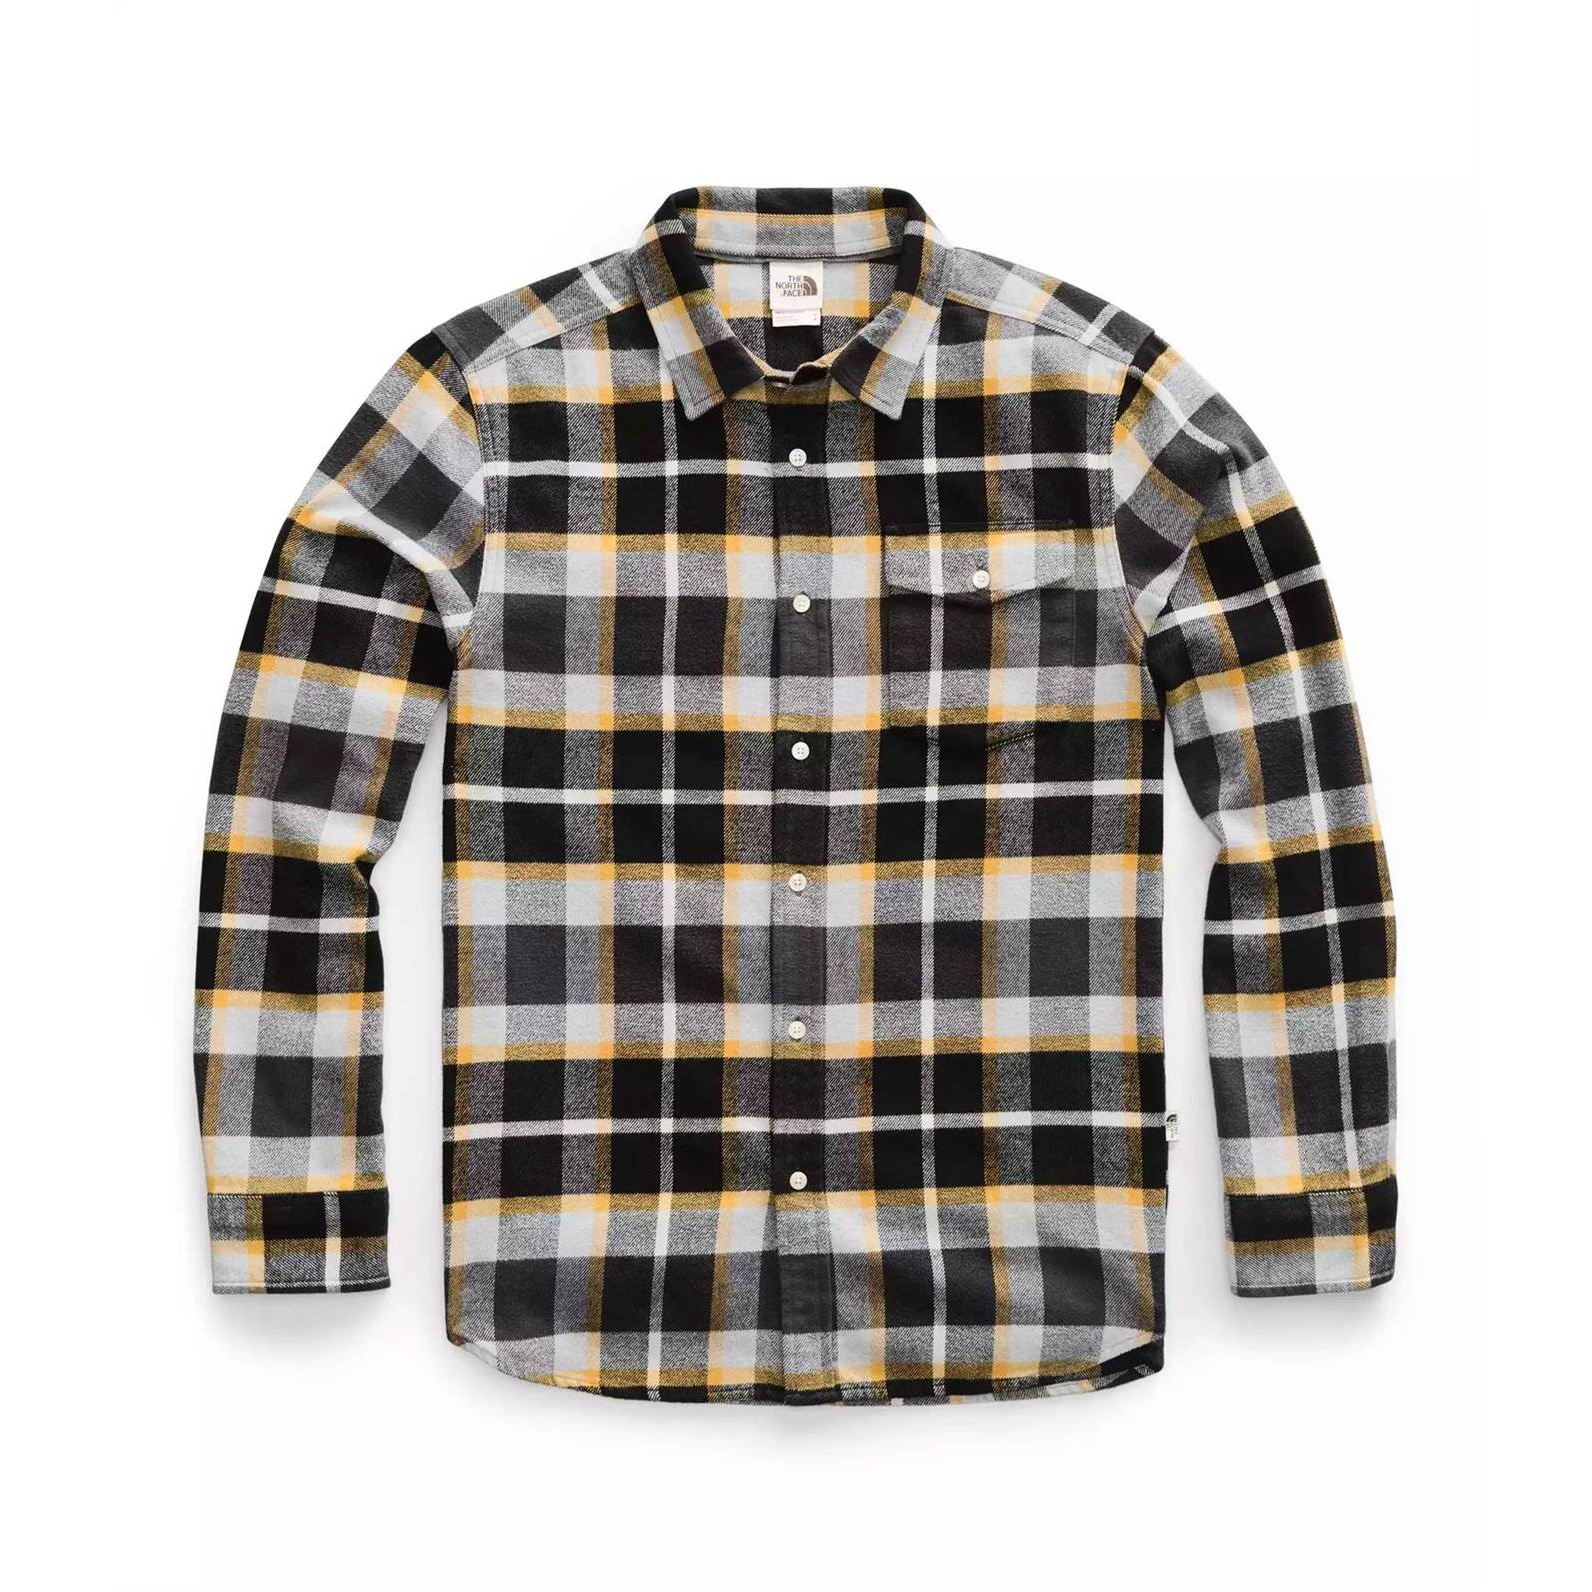 Arroyo Flannel Shirt Long Sleeve - Men's